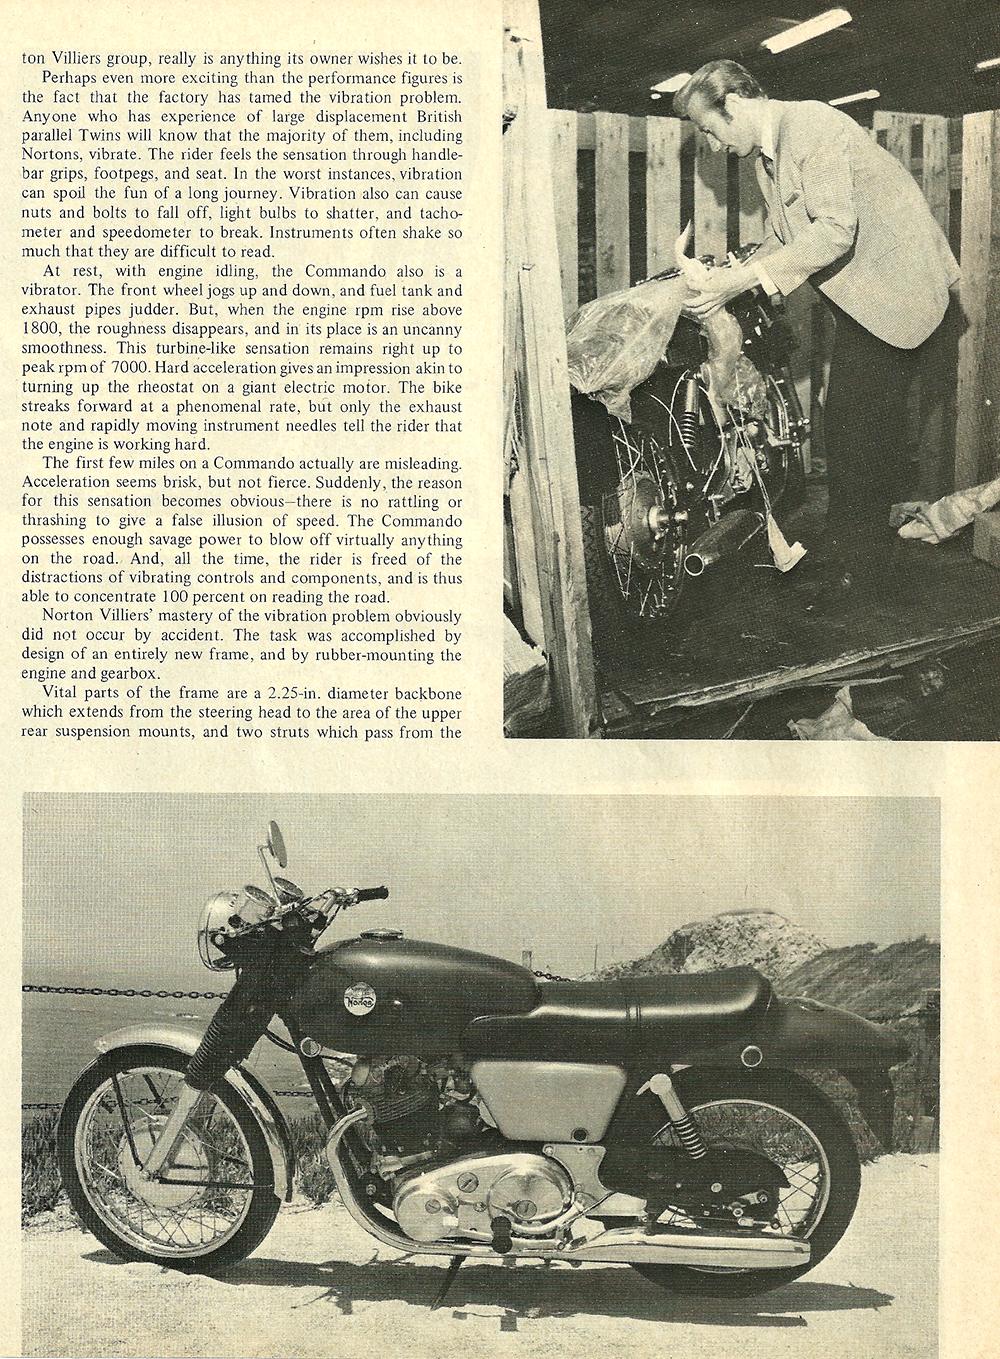 1968 Norton Commando 750 road test 02.jpg